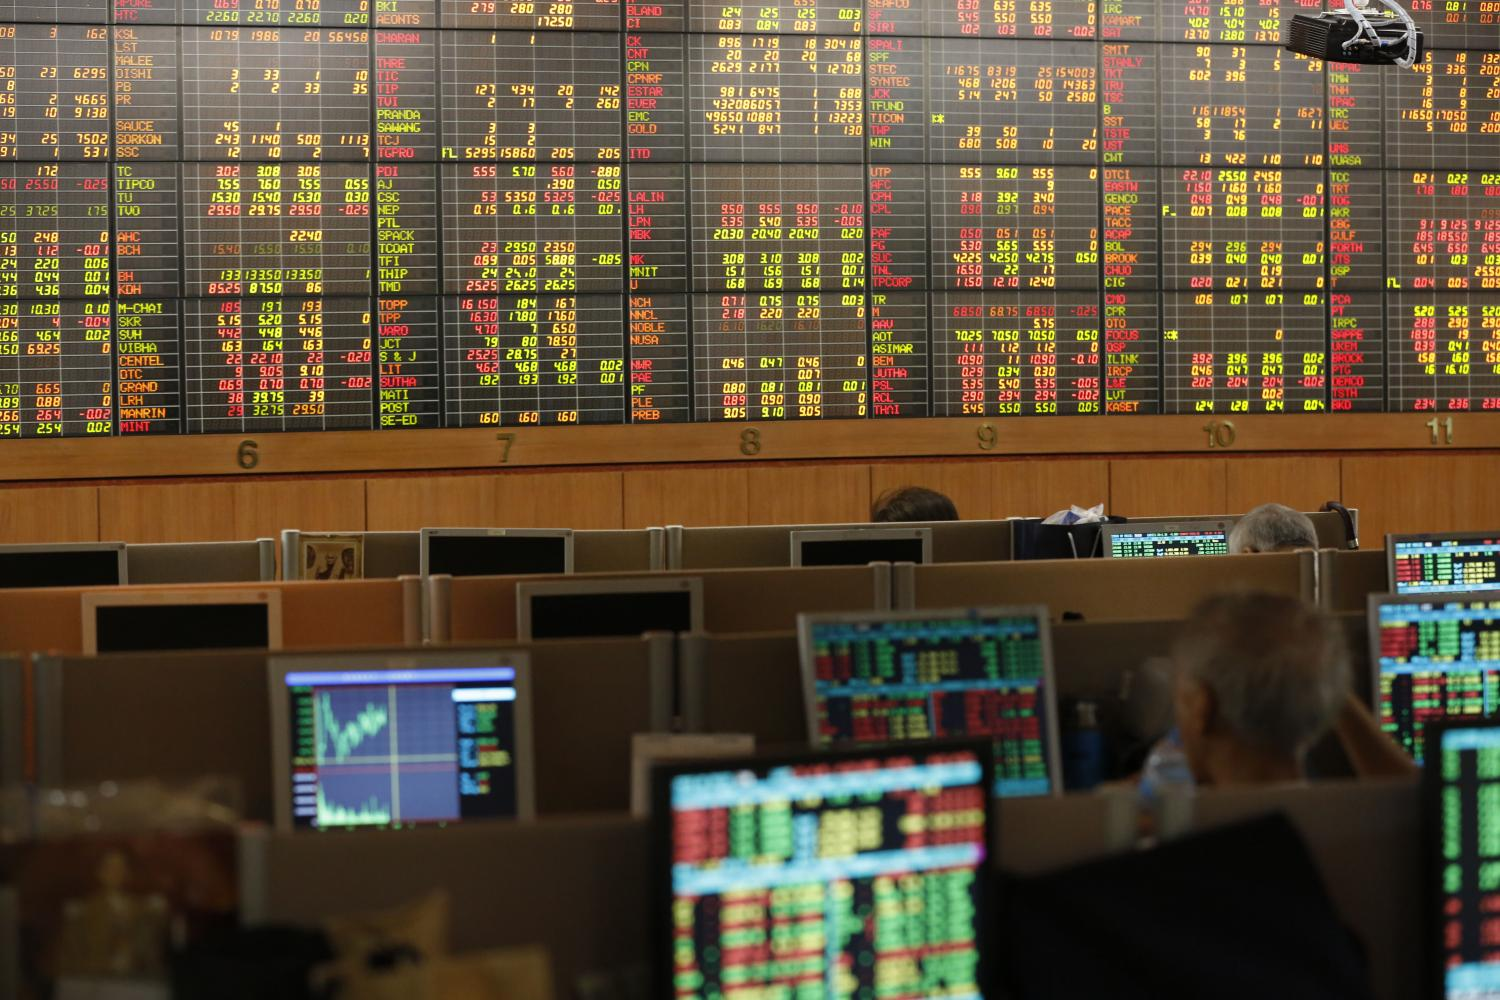 Investors monitor share price movements at Asia Plus Securities' headquarters on Sathon Road. (Photo by Pornprom Satrabhaya)